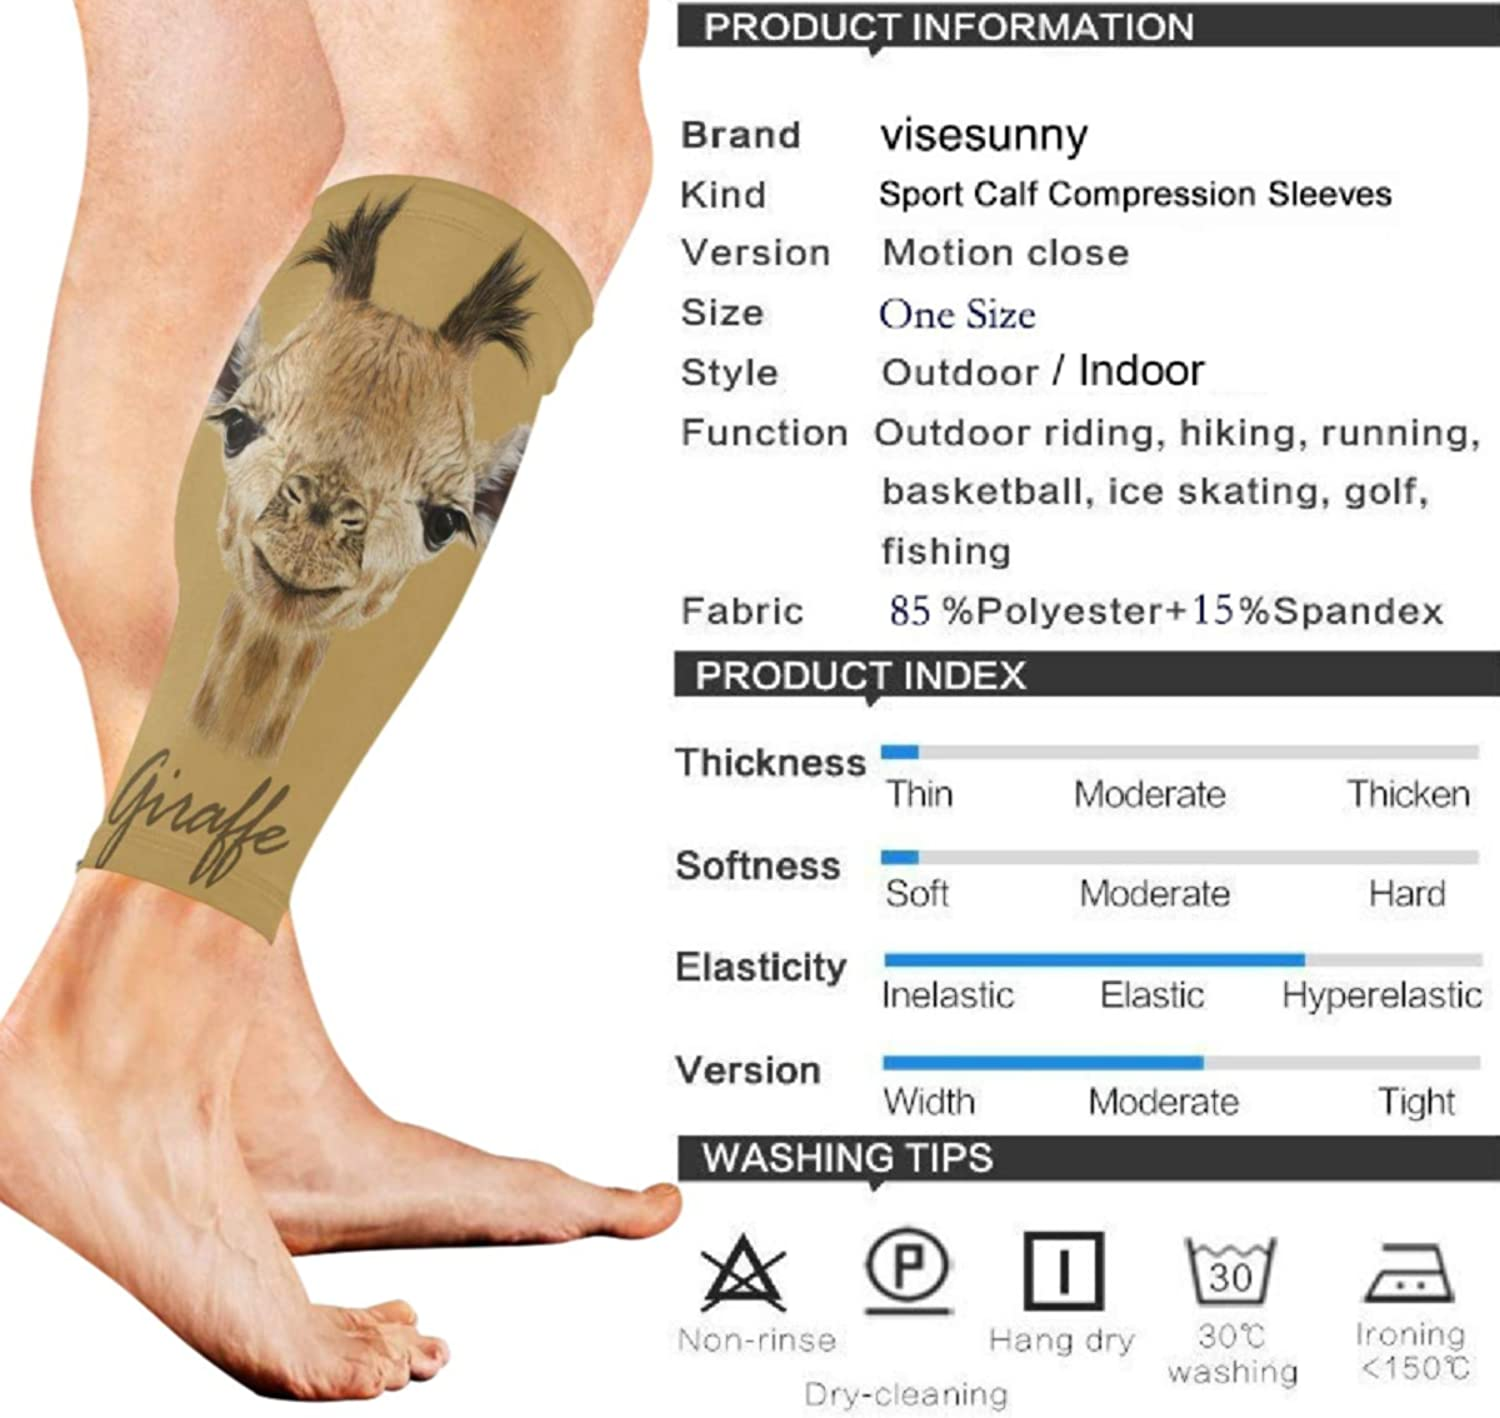 visesunny Attractive Cute Young Giraffe Sports Calf Support Sleeves for Muscle Pain Relief, Improved Circulation Compression – Effective Support for Running, Jogging, Workout (1 Pair)